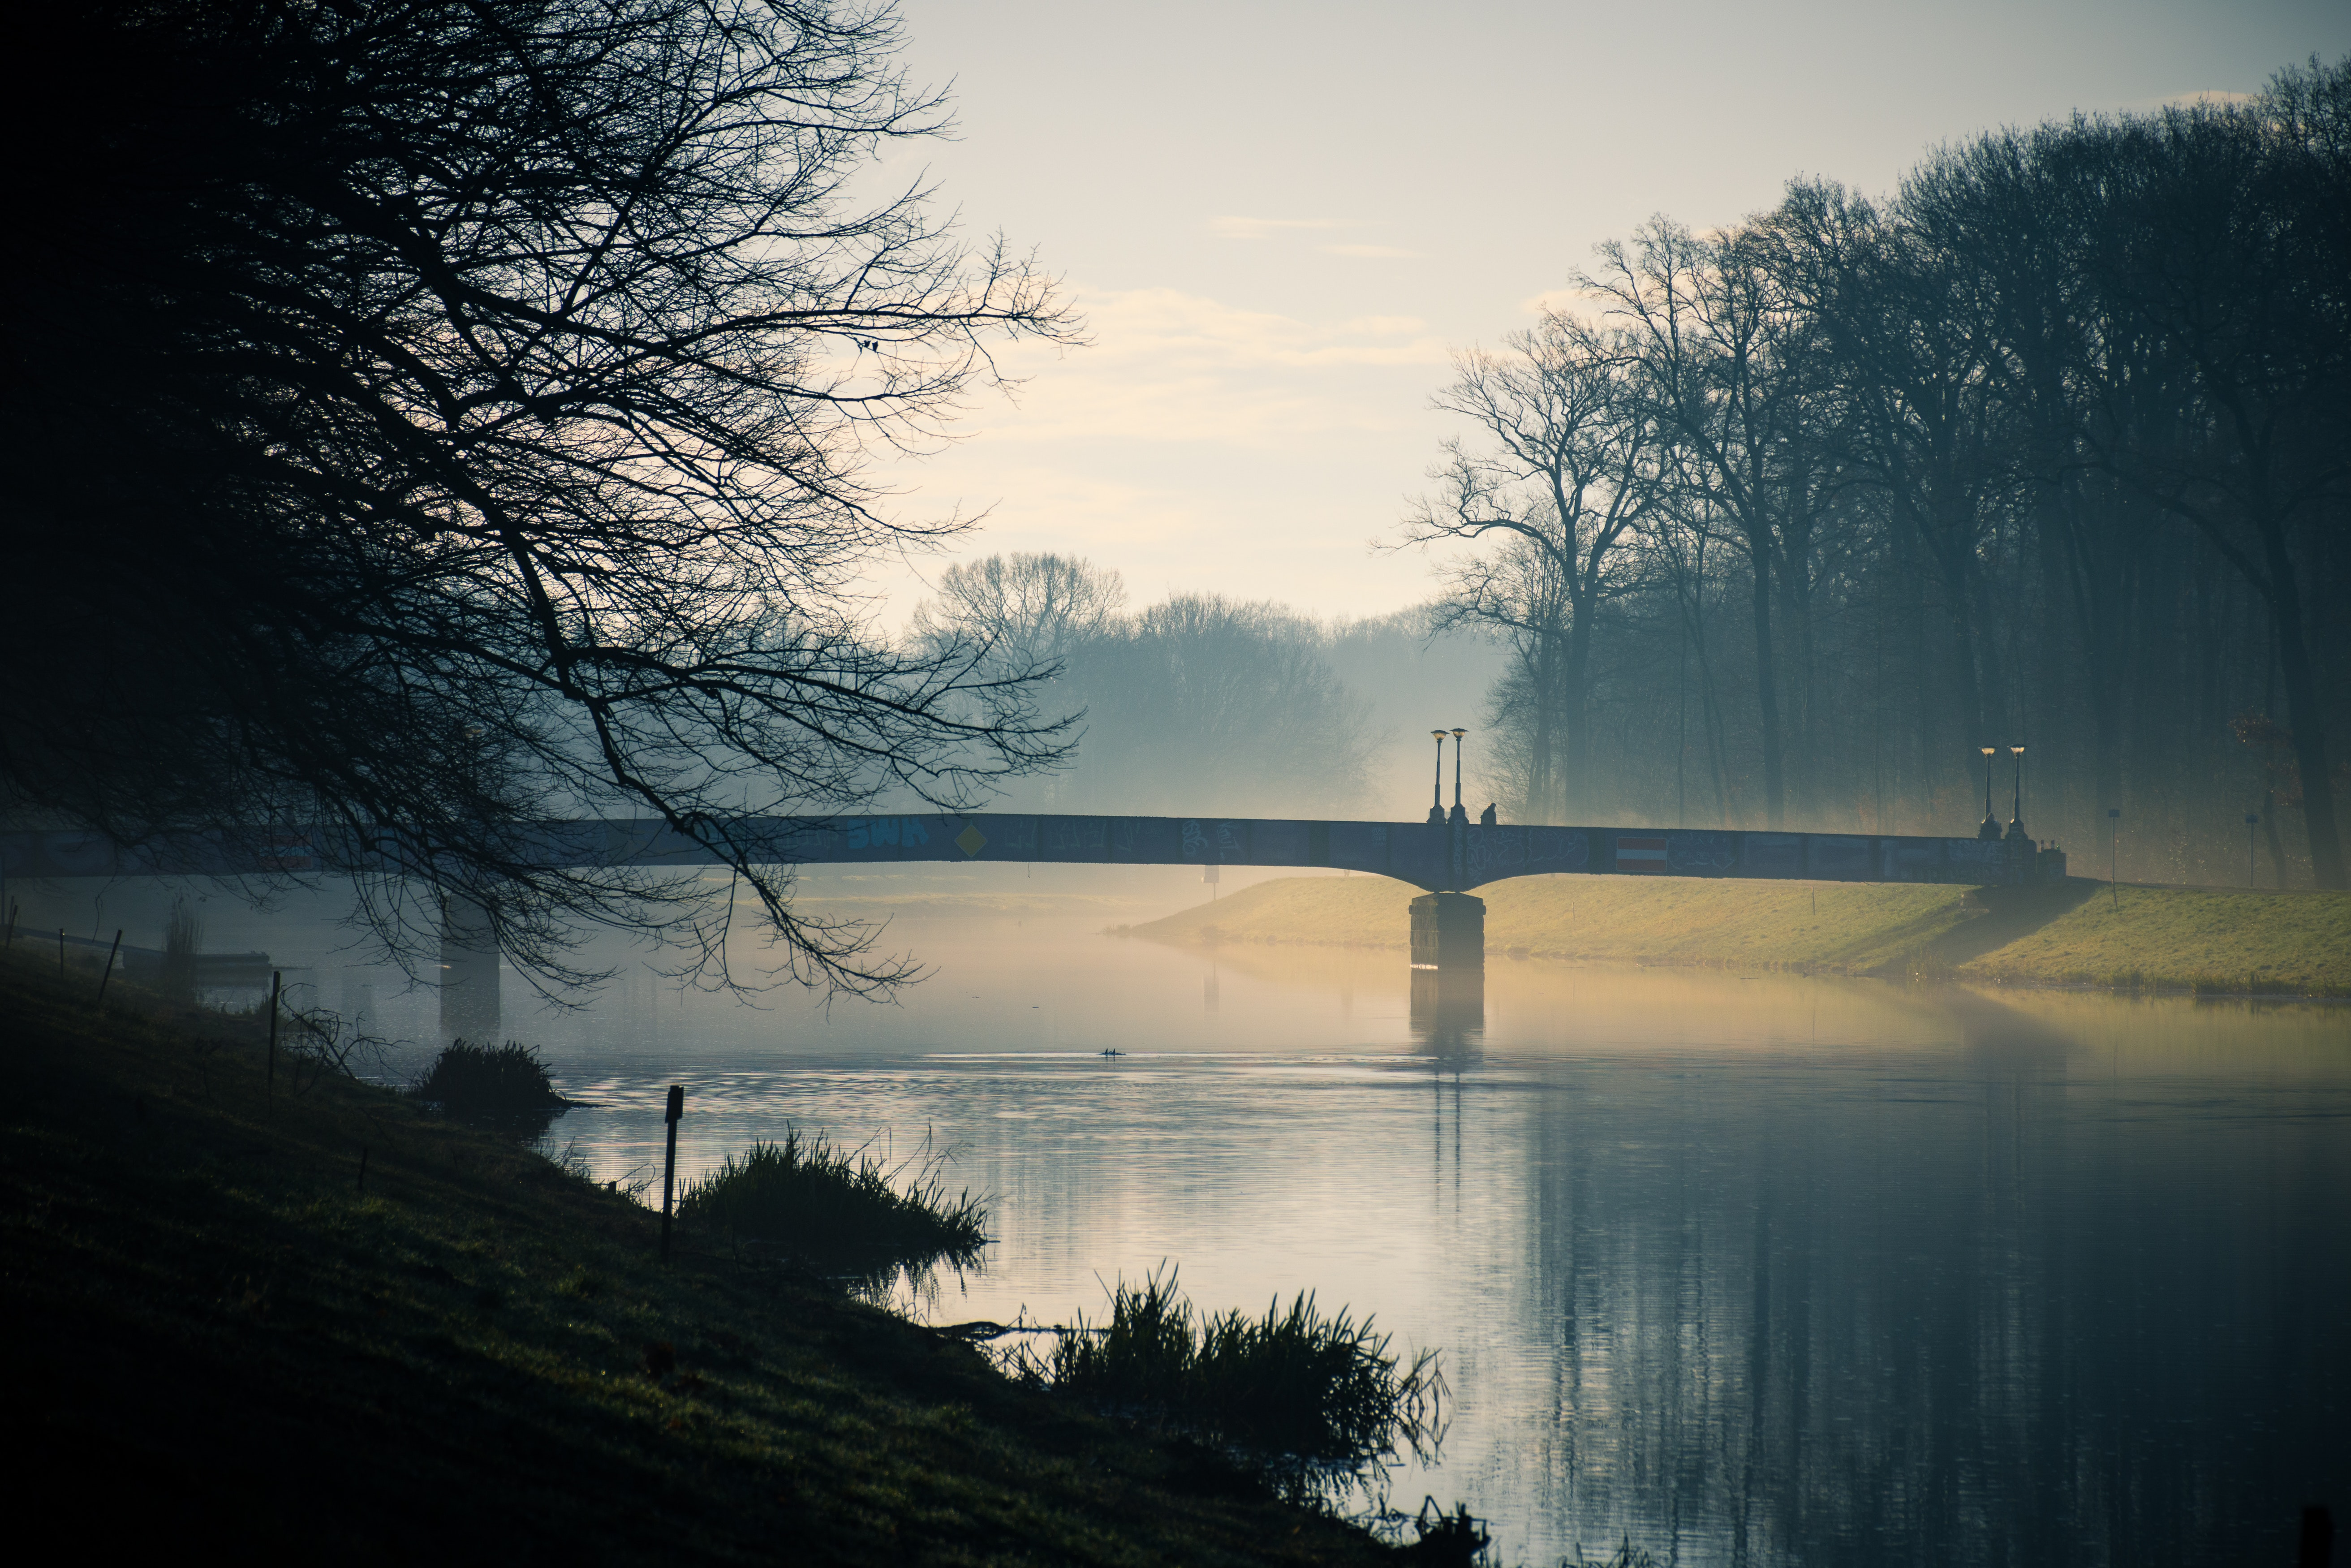 Gray Bridge Above River during Dusk, Bridge, Outdoors, Water, Trees, HQ Photo